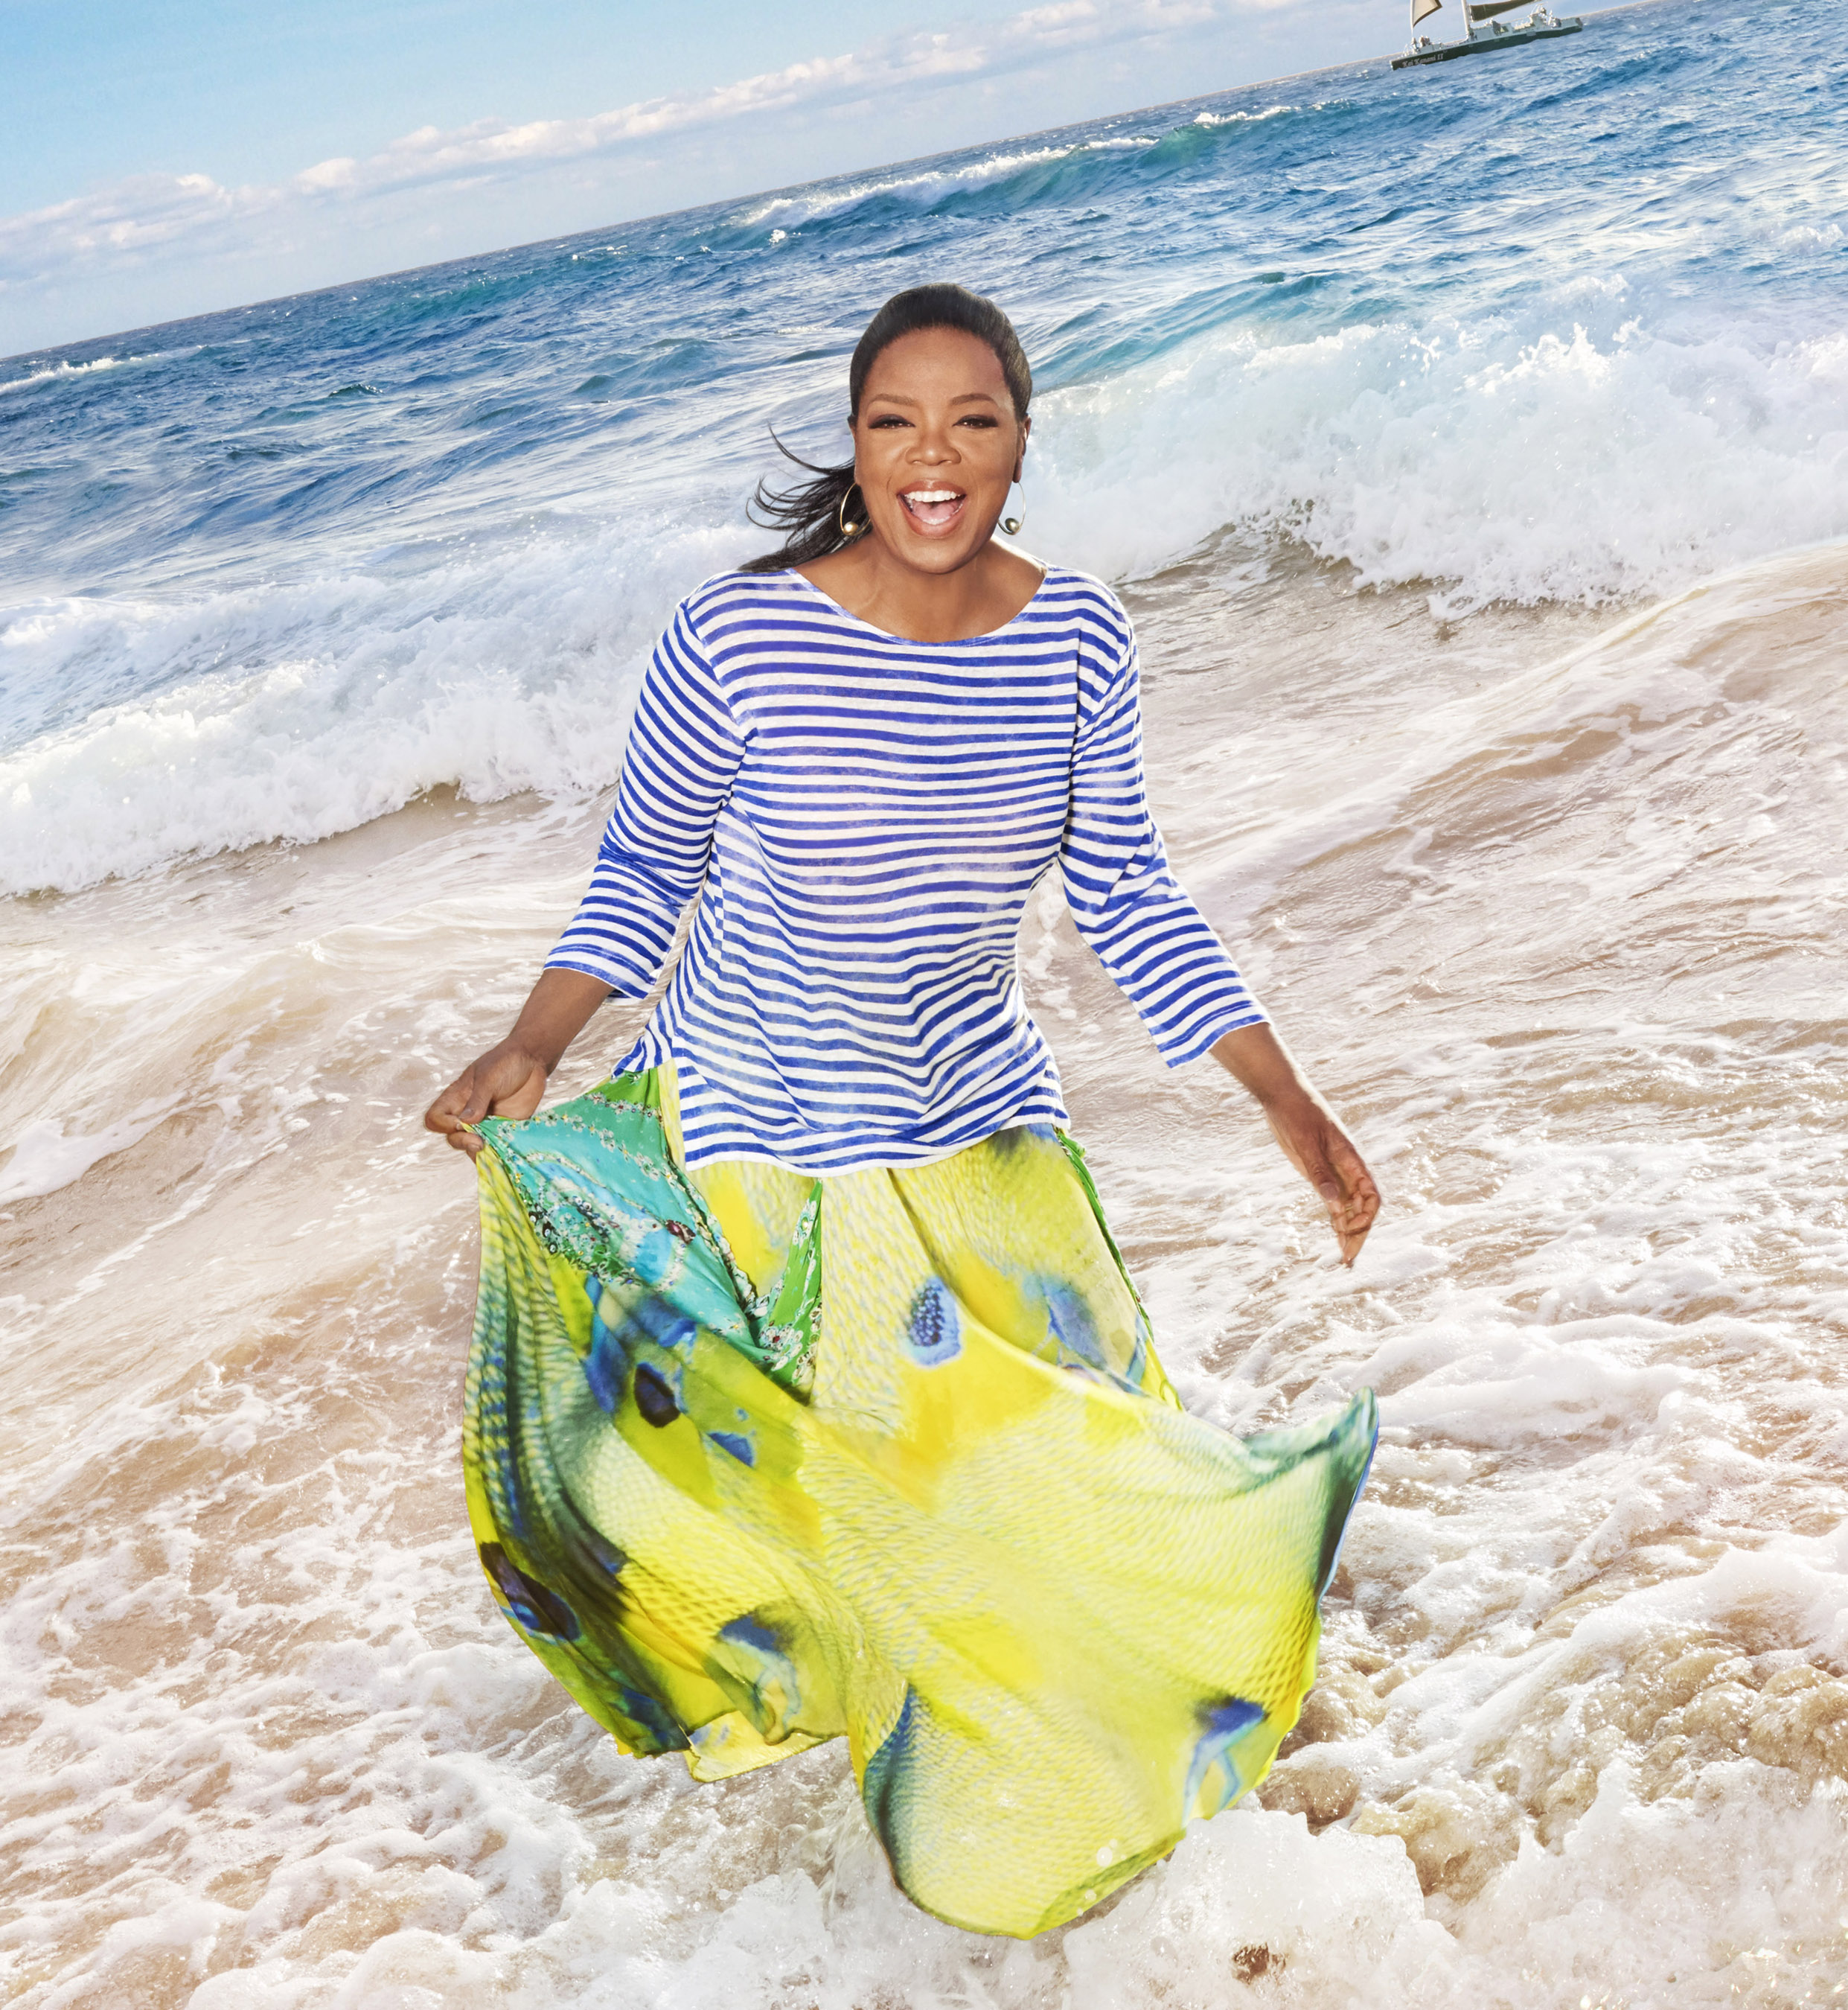 O, The Oprah Magazine Sets Sail on a Girls' Getaway